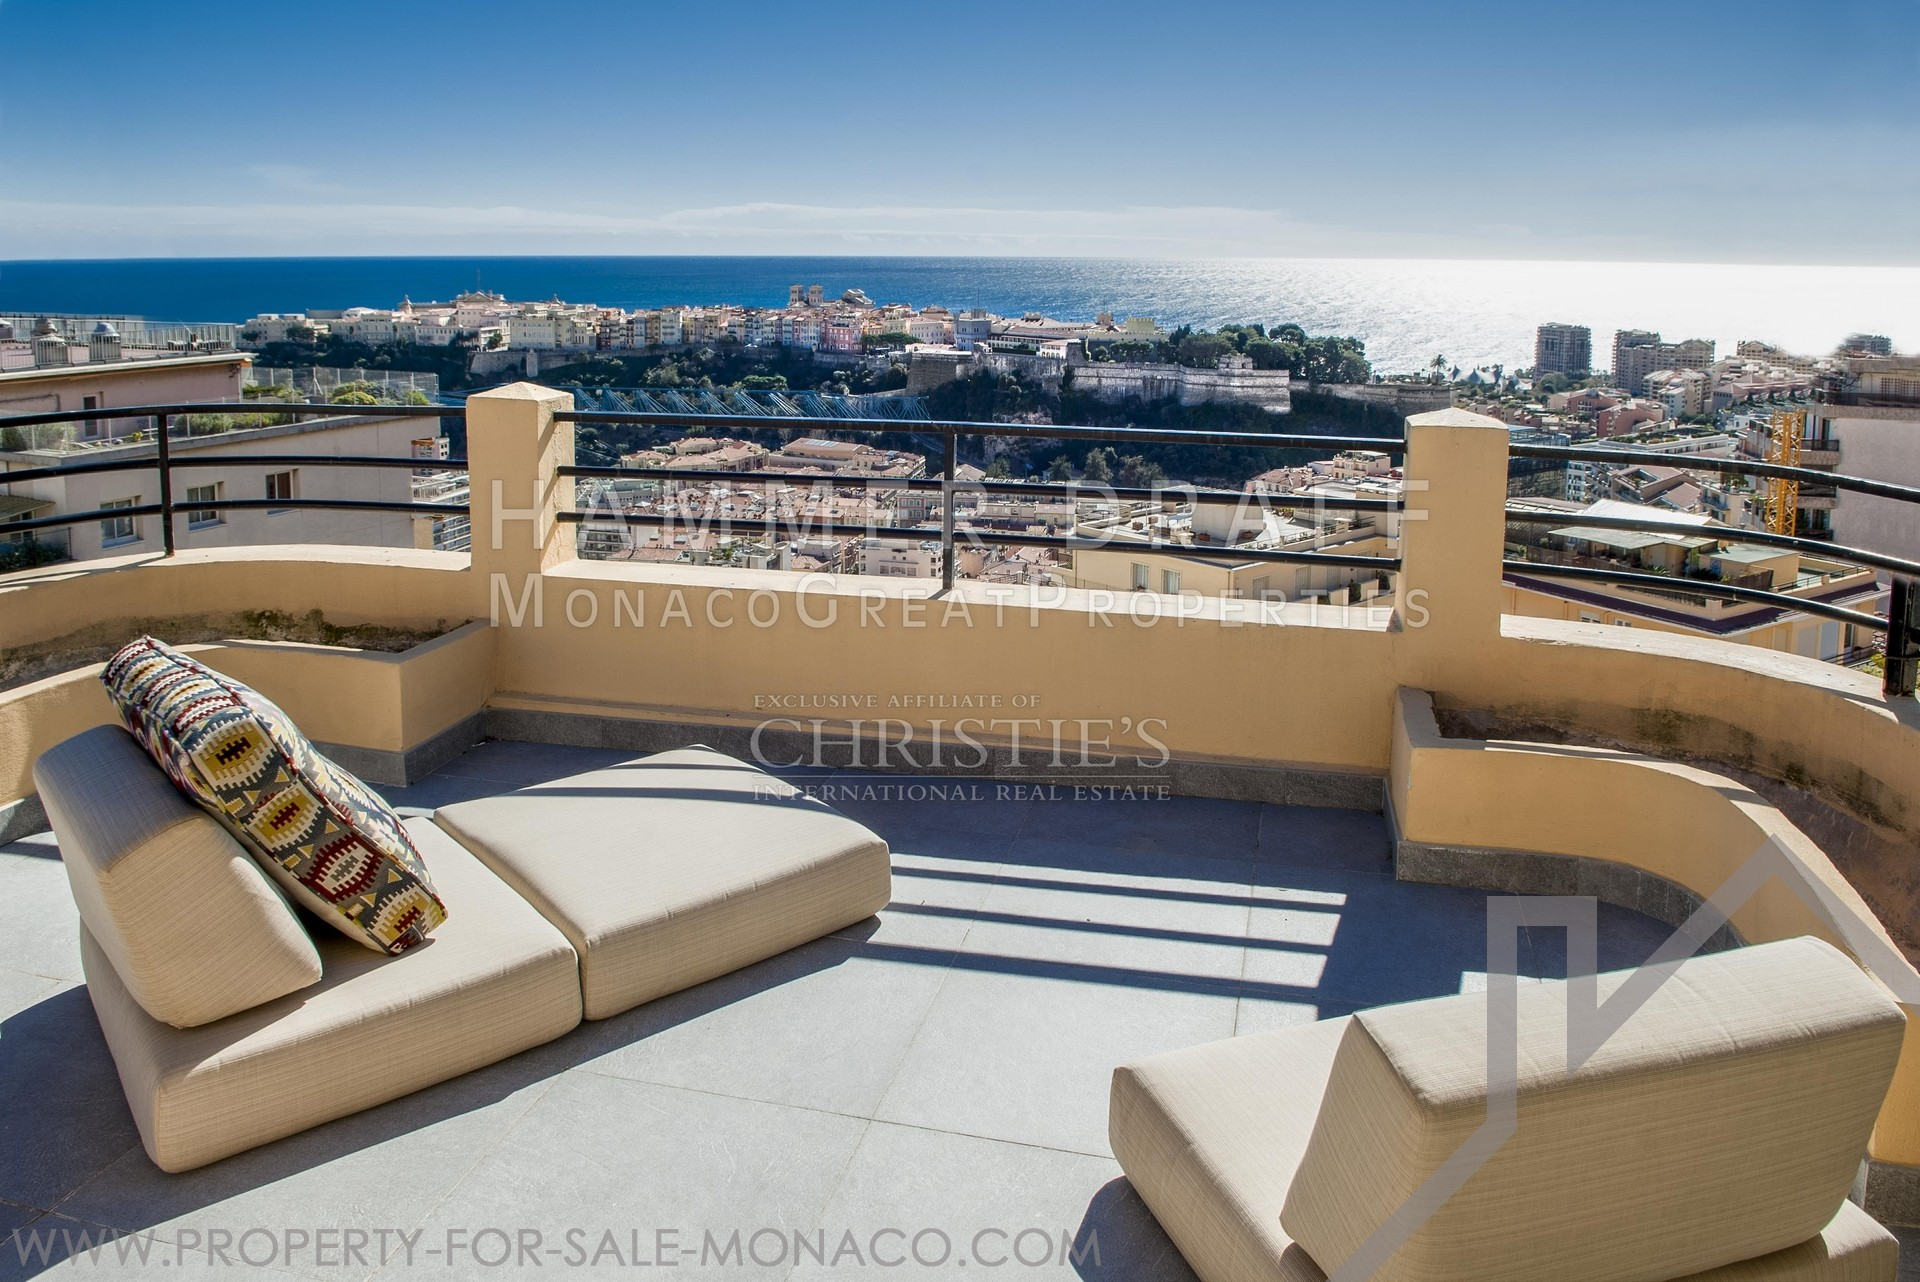 An eagle's nest above Monte-Carlo - Properties for sale in Monaco